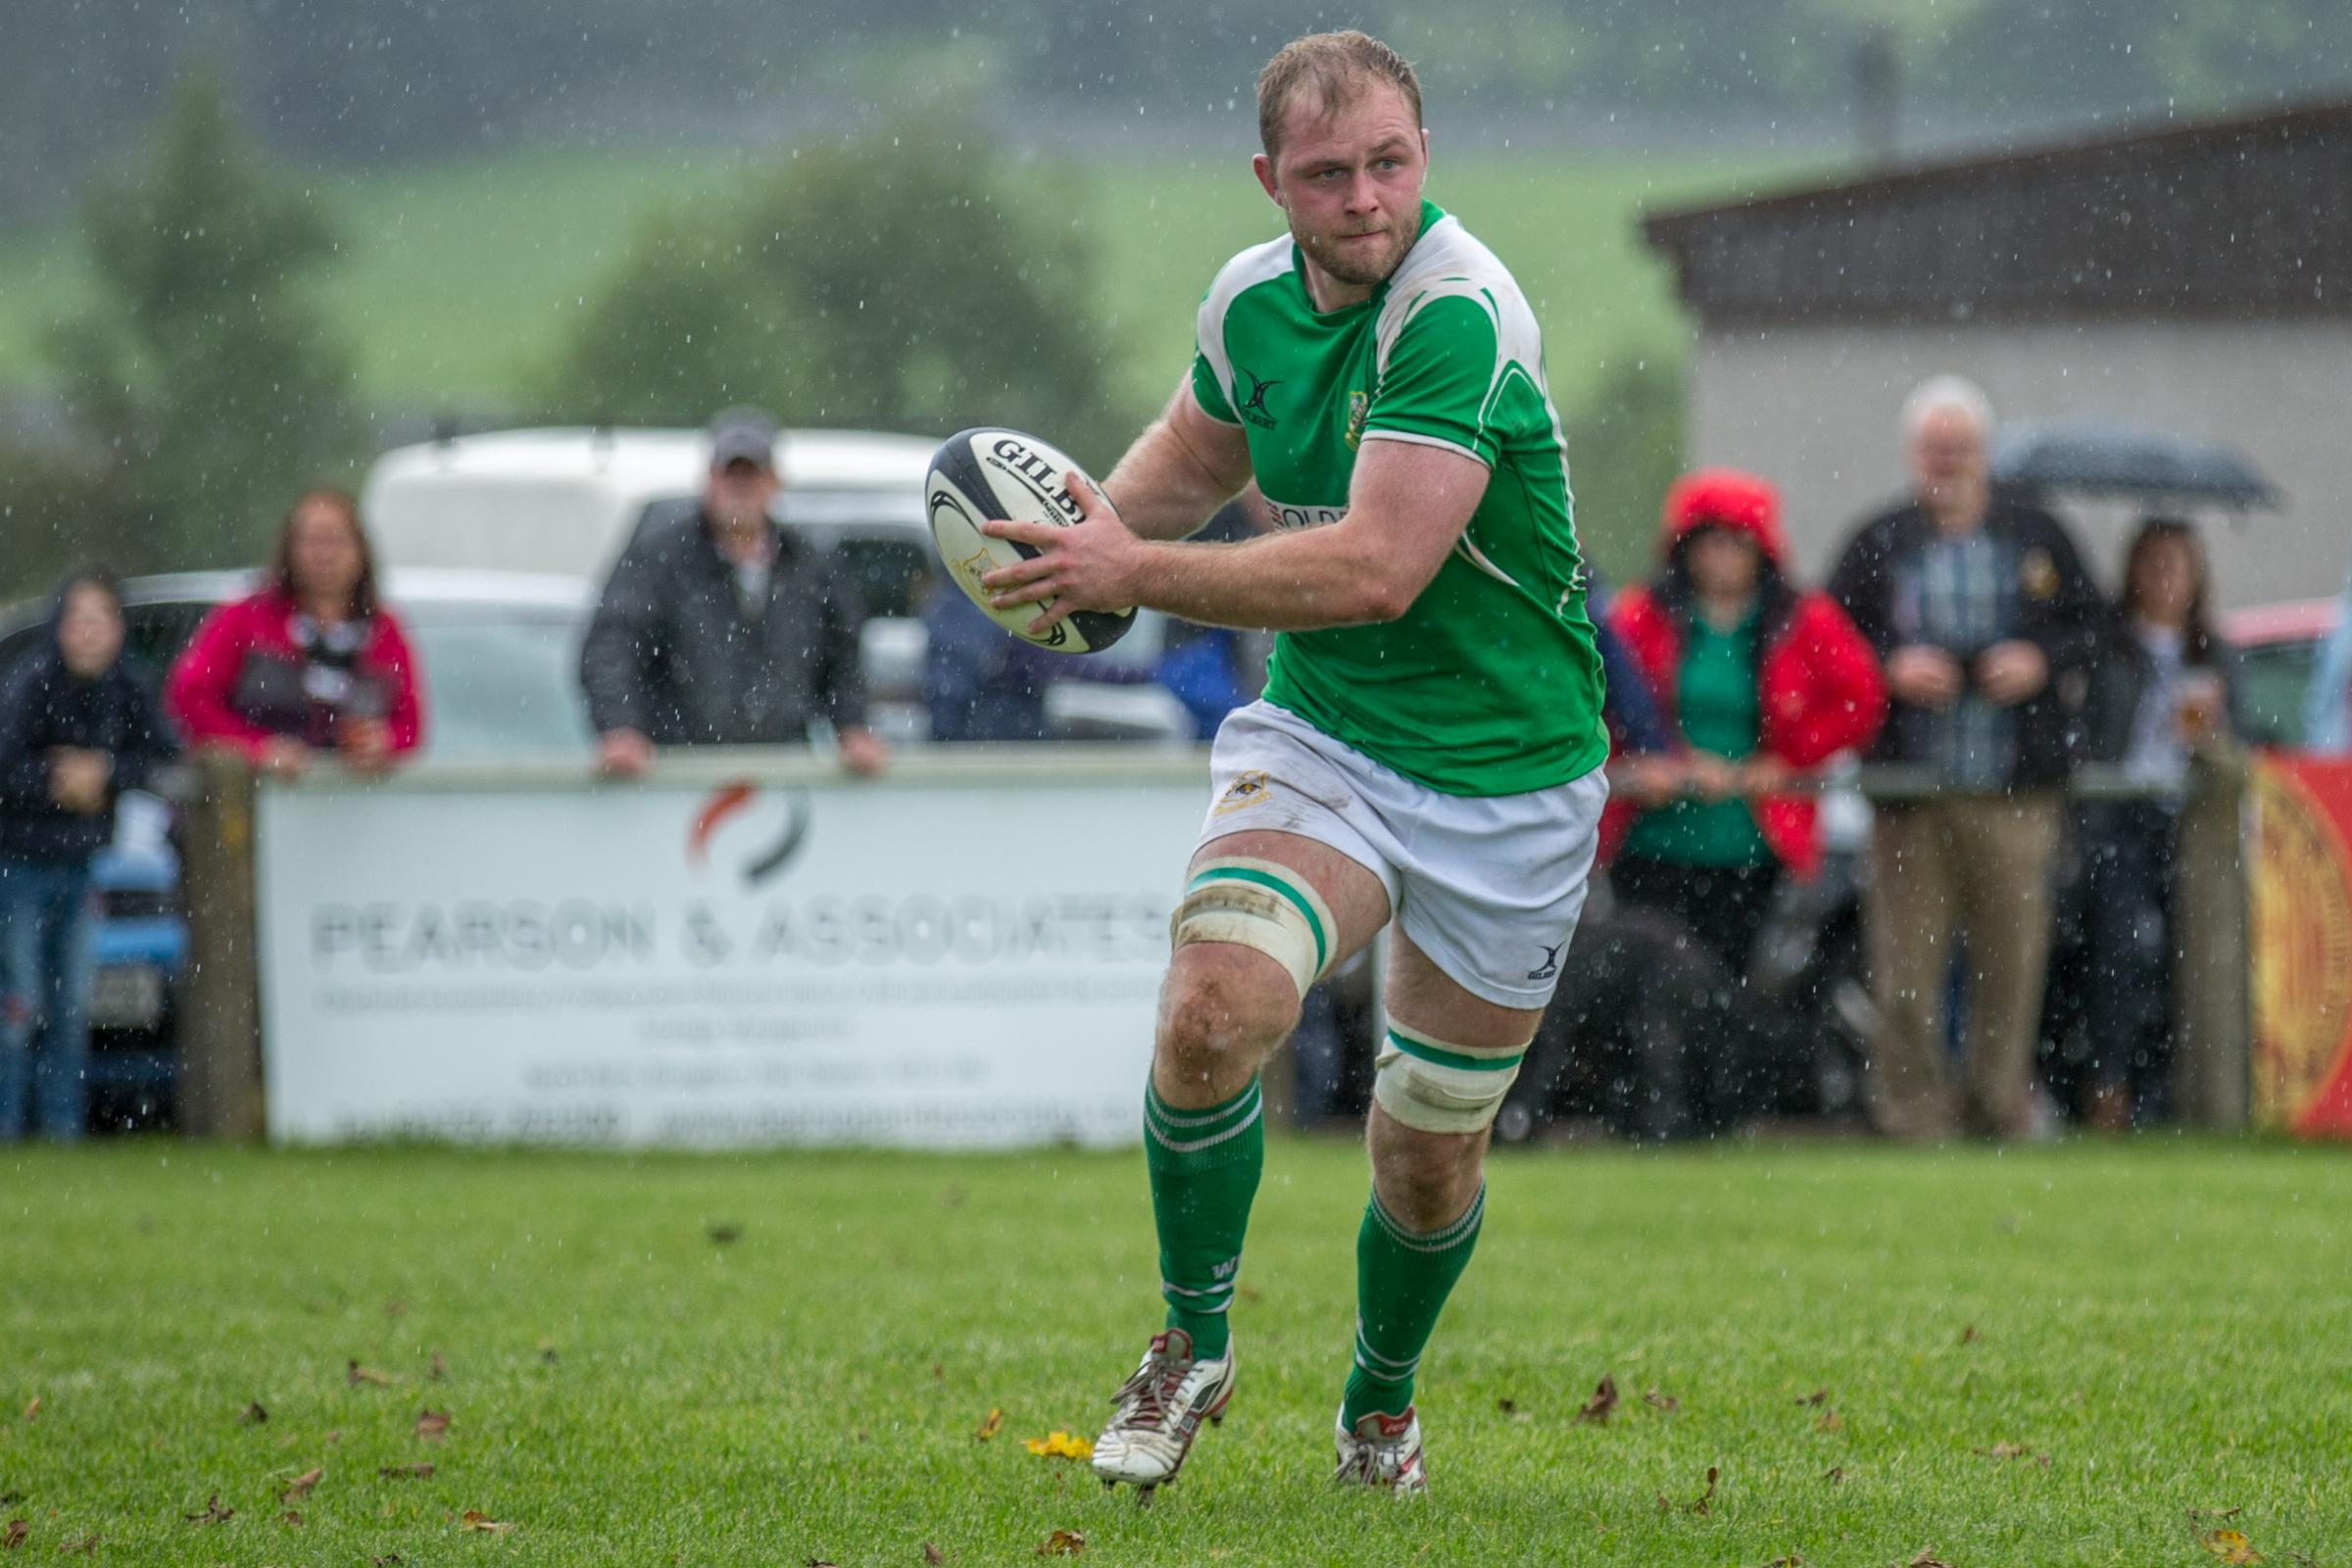 Wharfedale are giving Josh Burridge another week to rest his hamstring